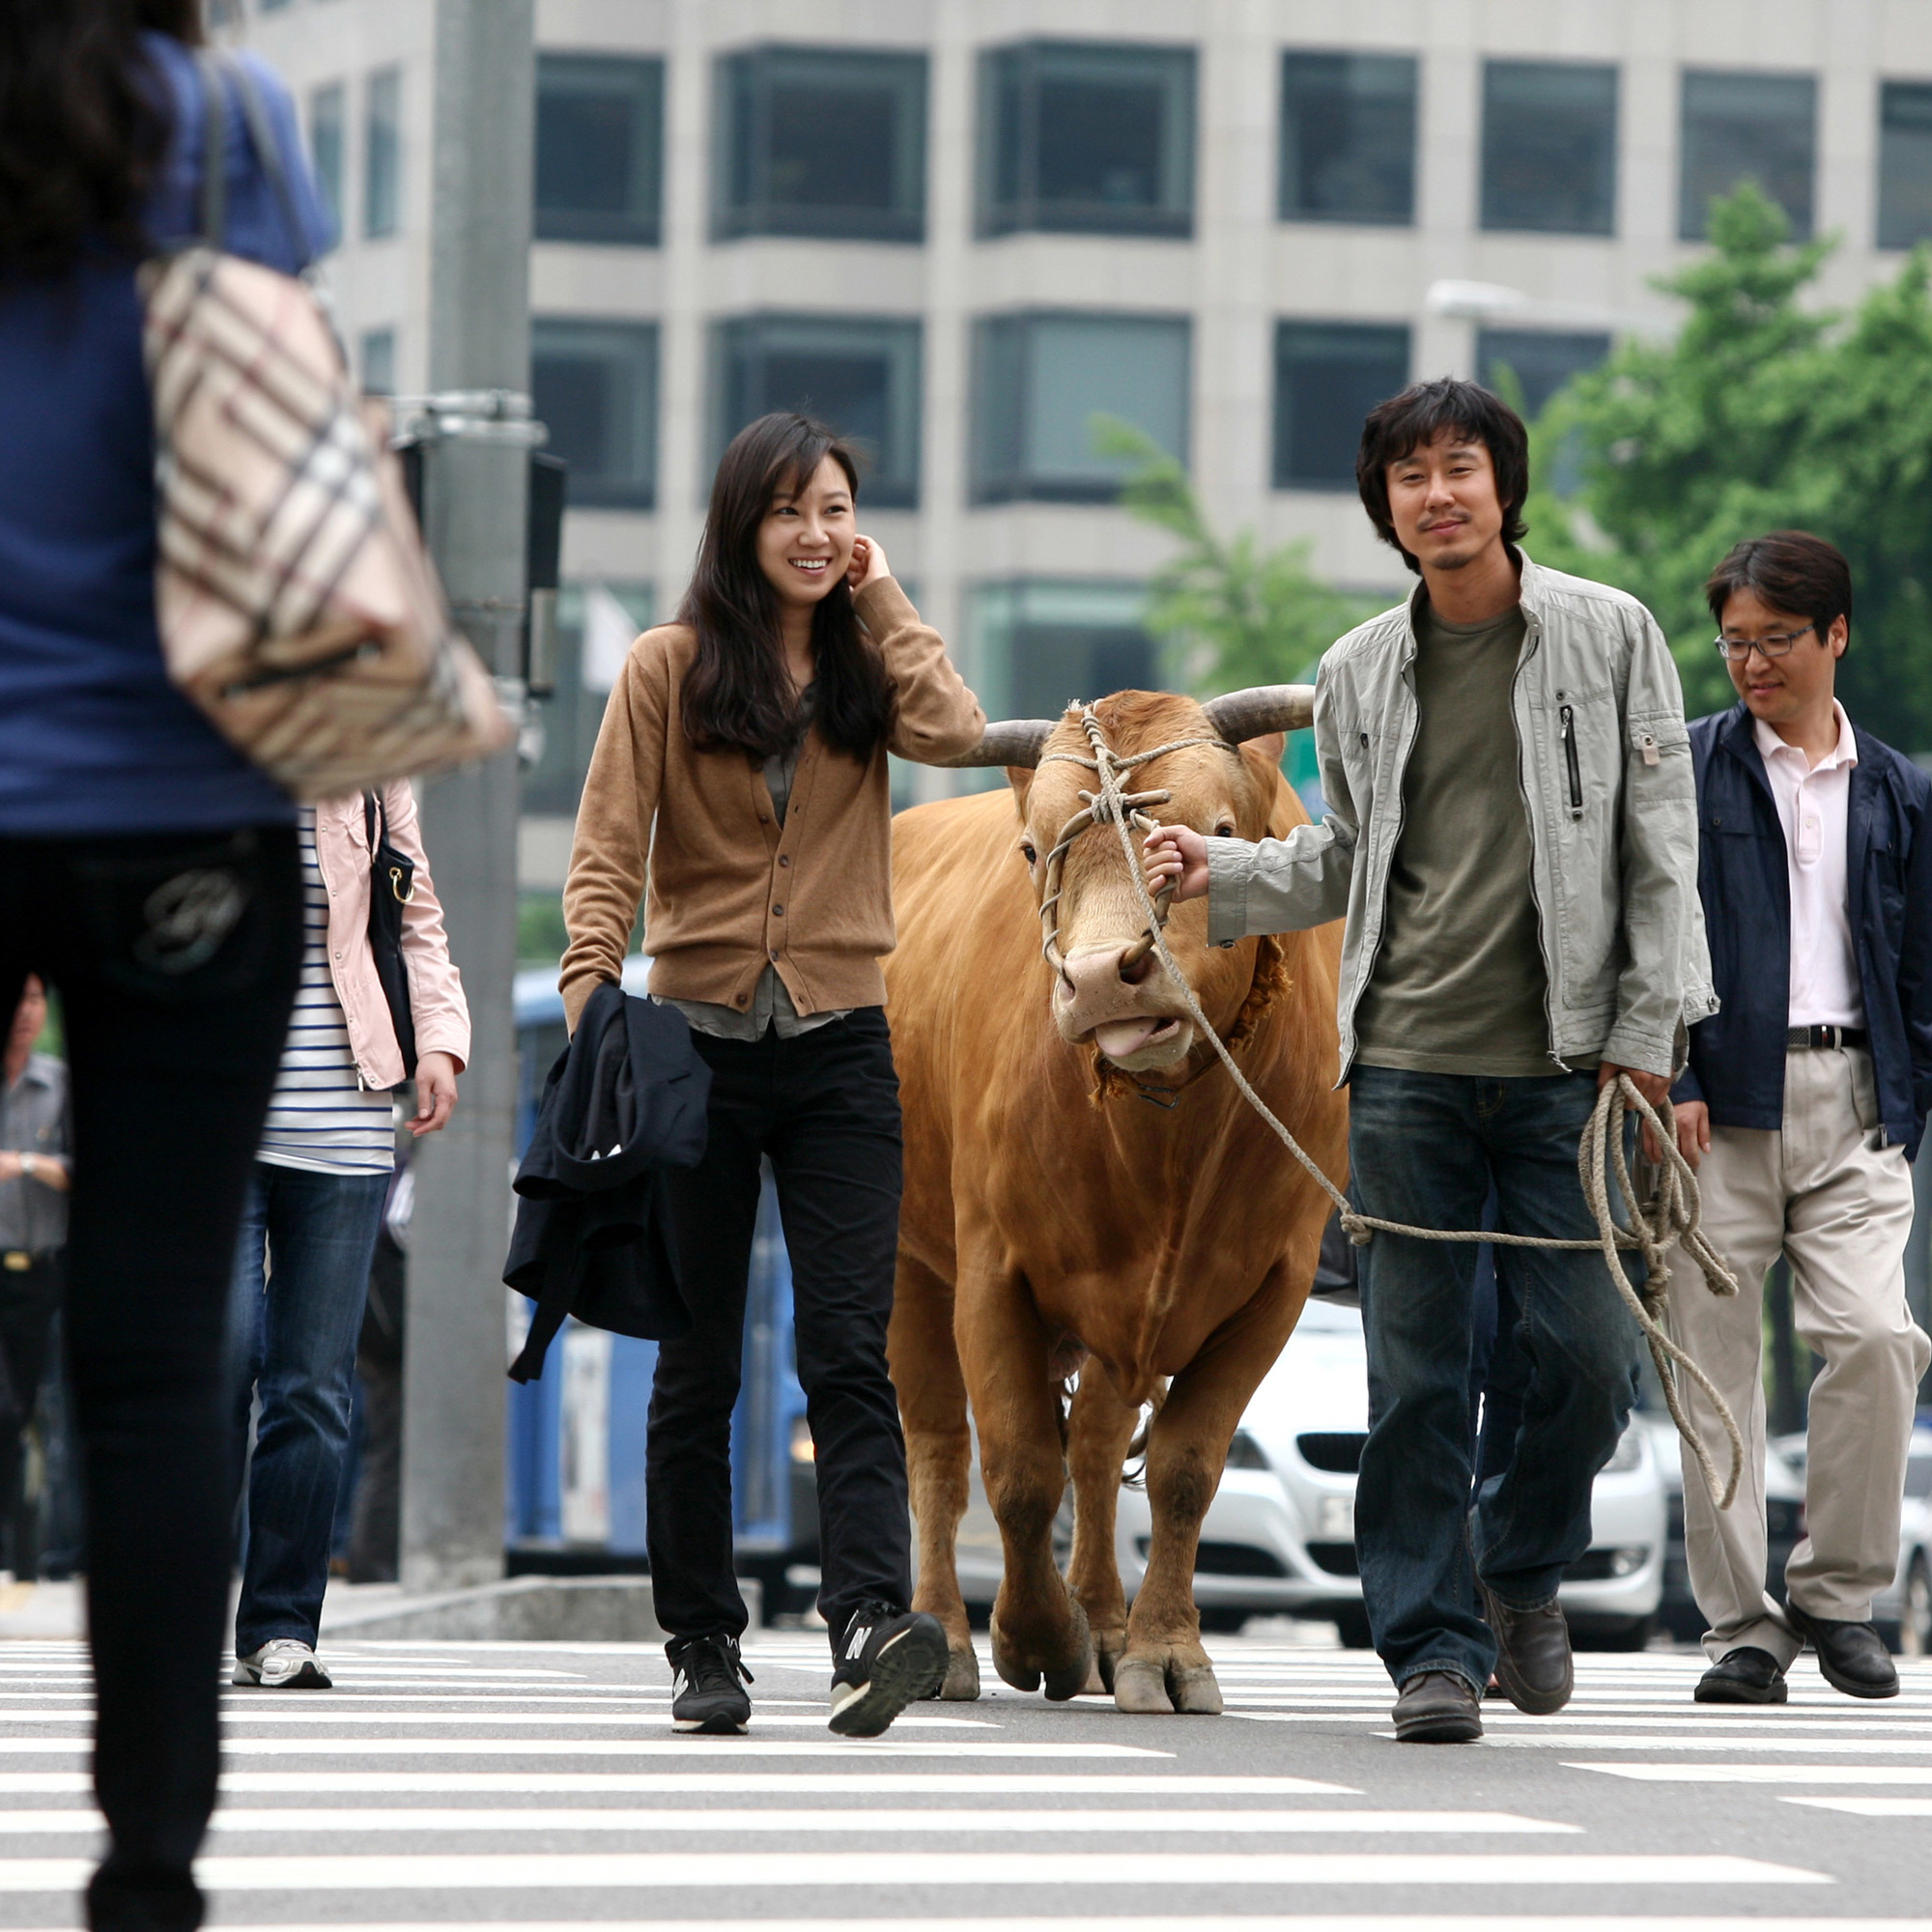 Rolling Home with a Bull. 2010. South Korea. Directed by Im Soon-rye